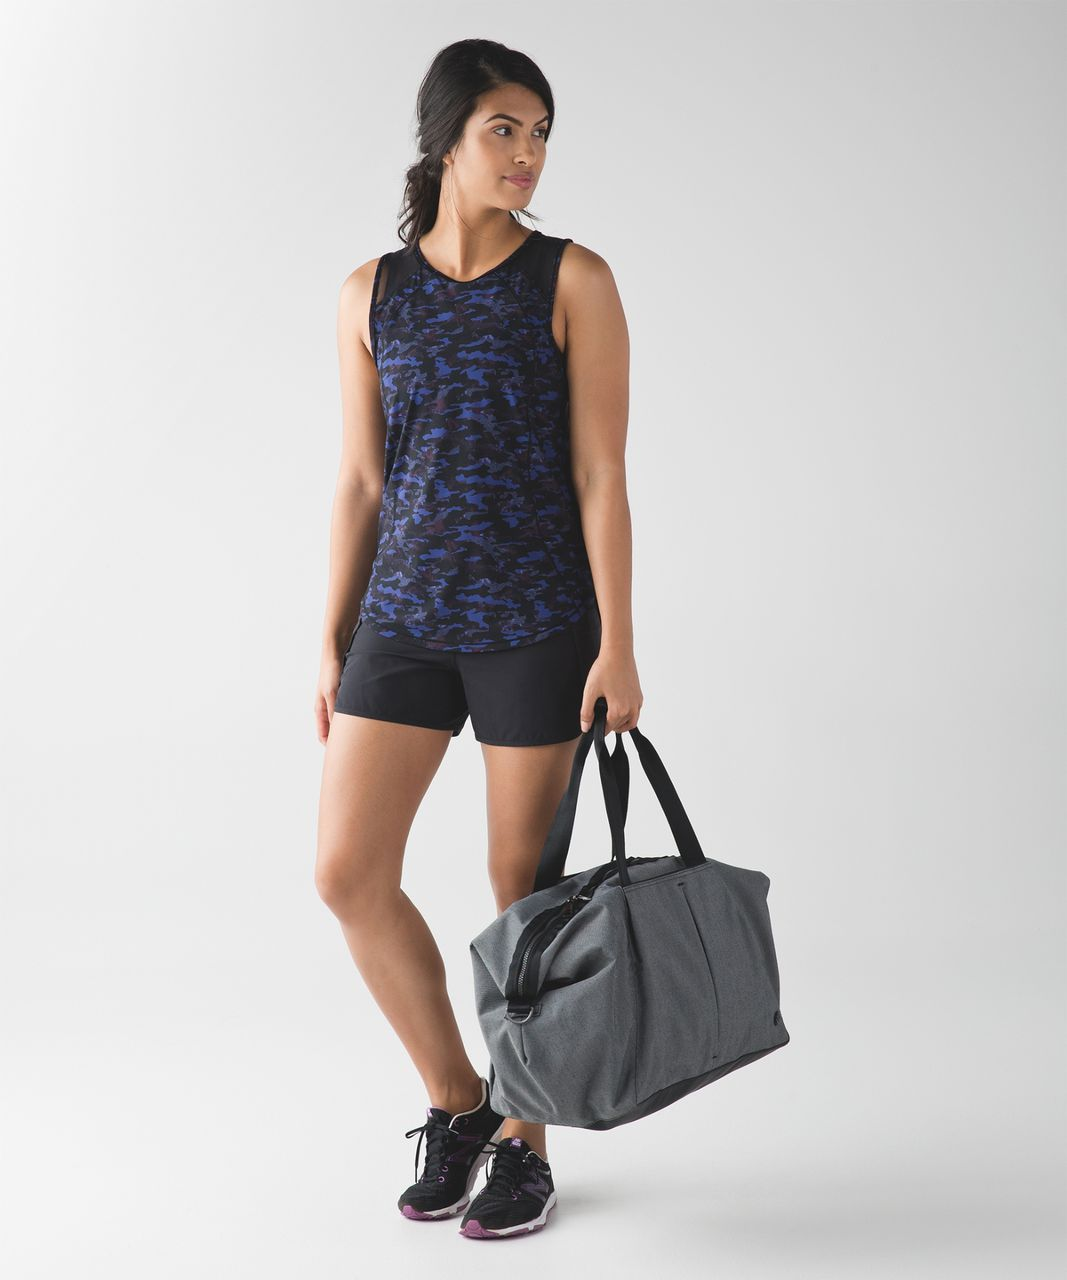 Lululemon Sculpt Tank - Mini Hounds Camo Emperor Blue Black / Black